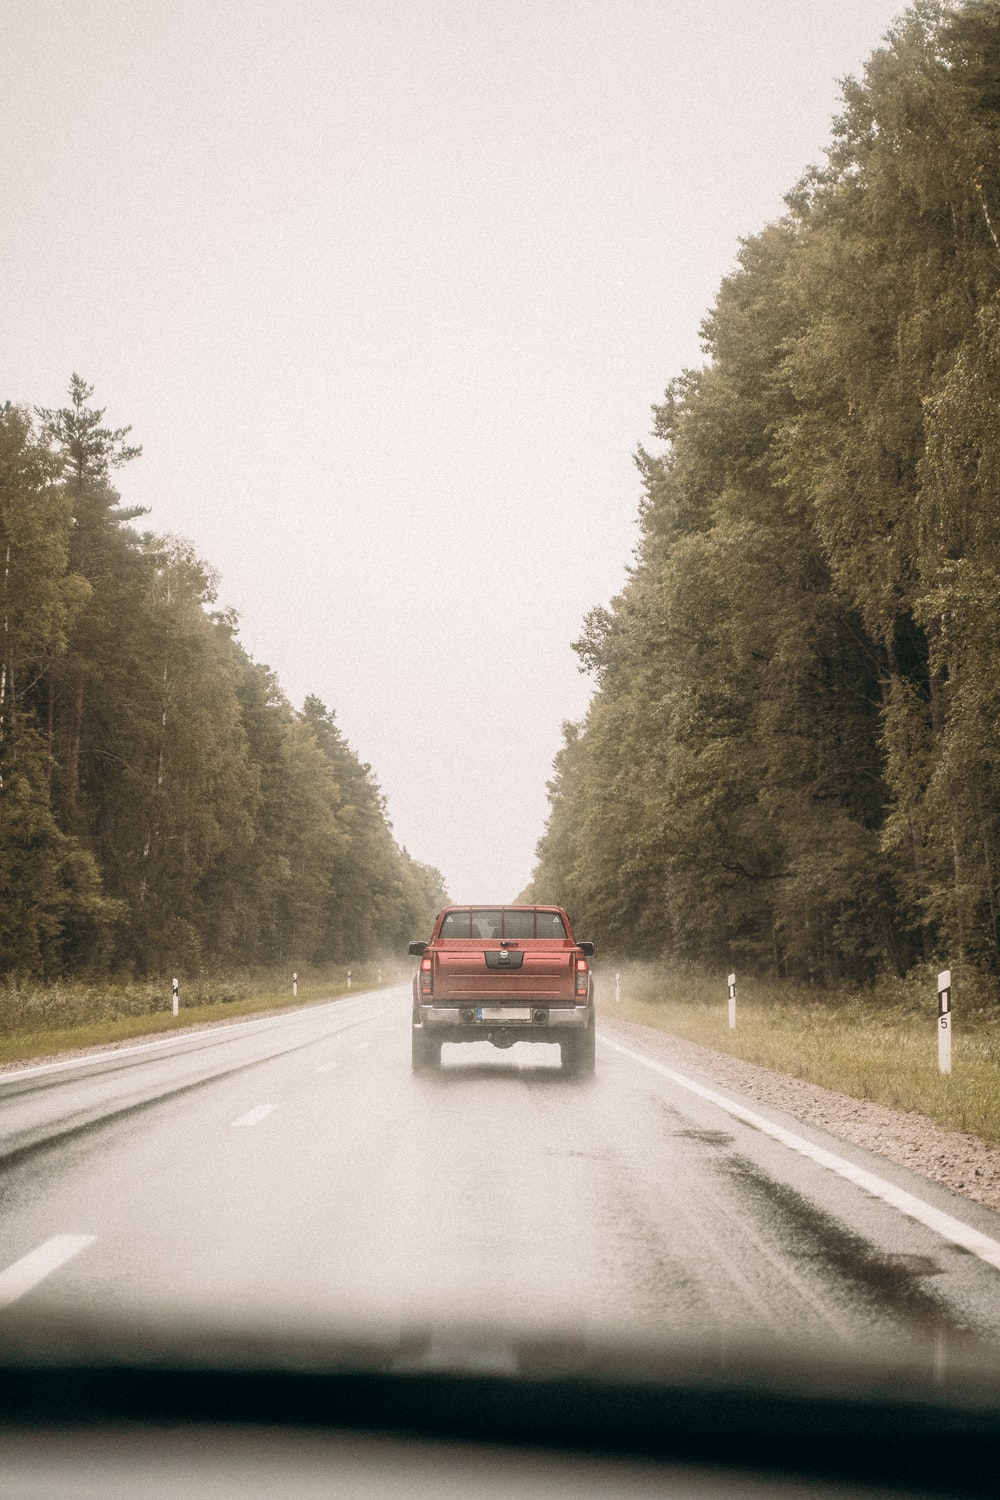 red suv on road between trees during daytime